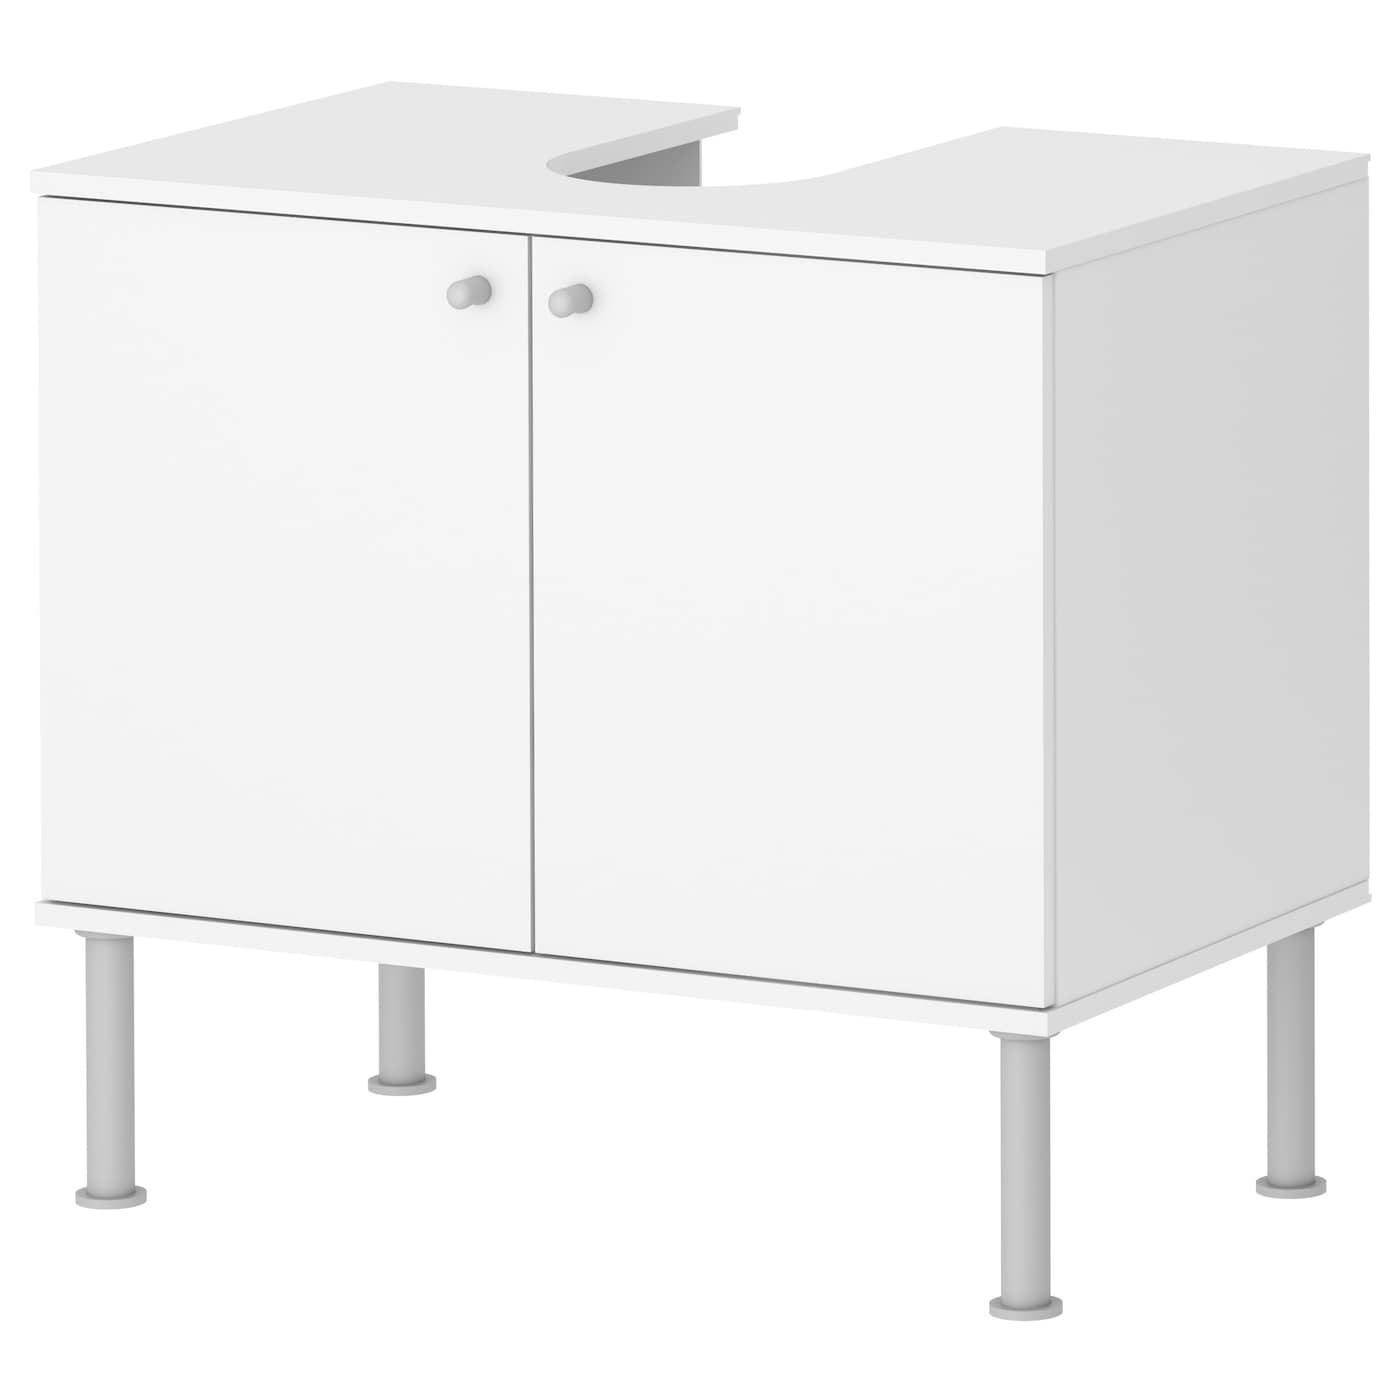 FULLEN Wash basin base cabinet w 2 doors White 60x55 cm IKEA